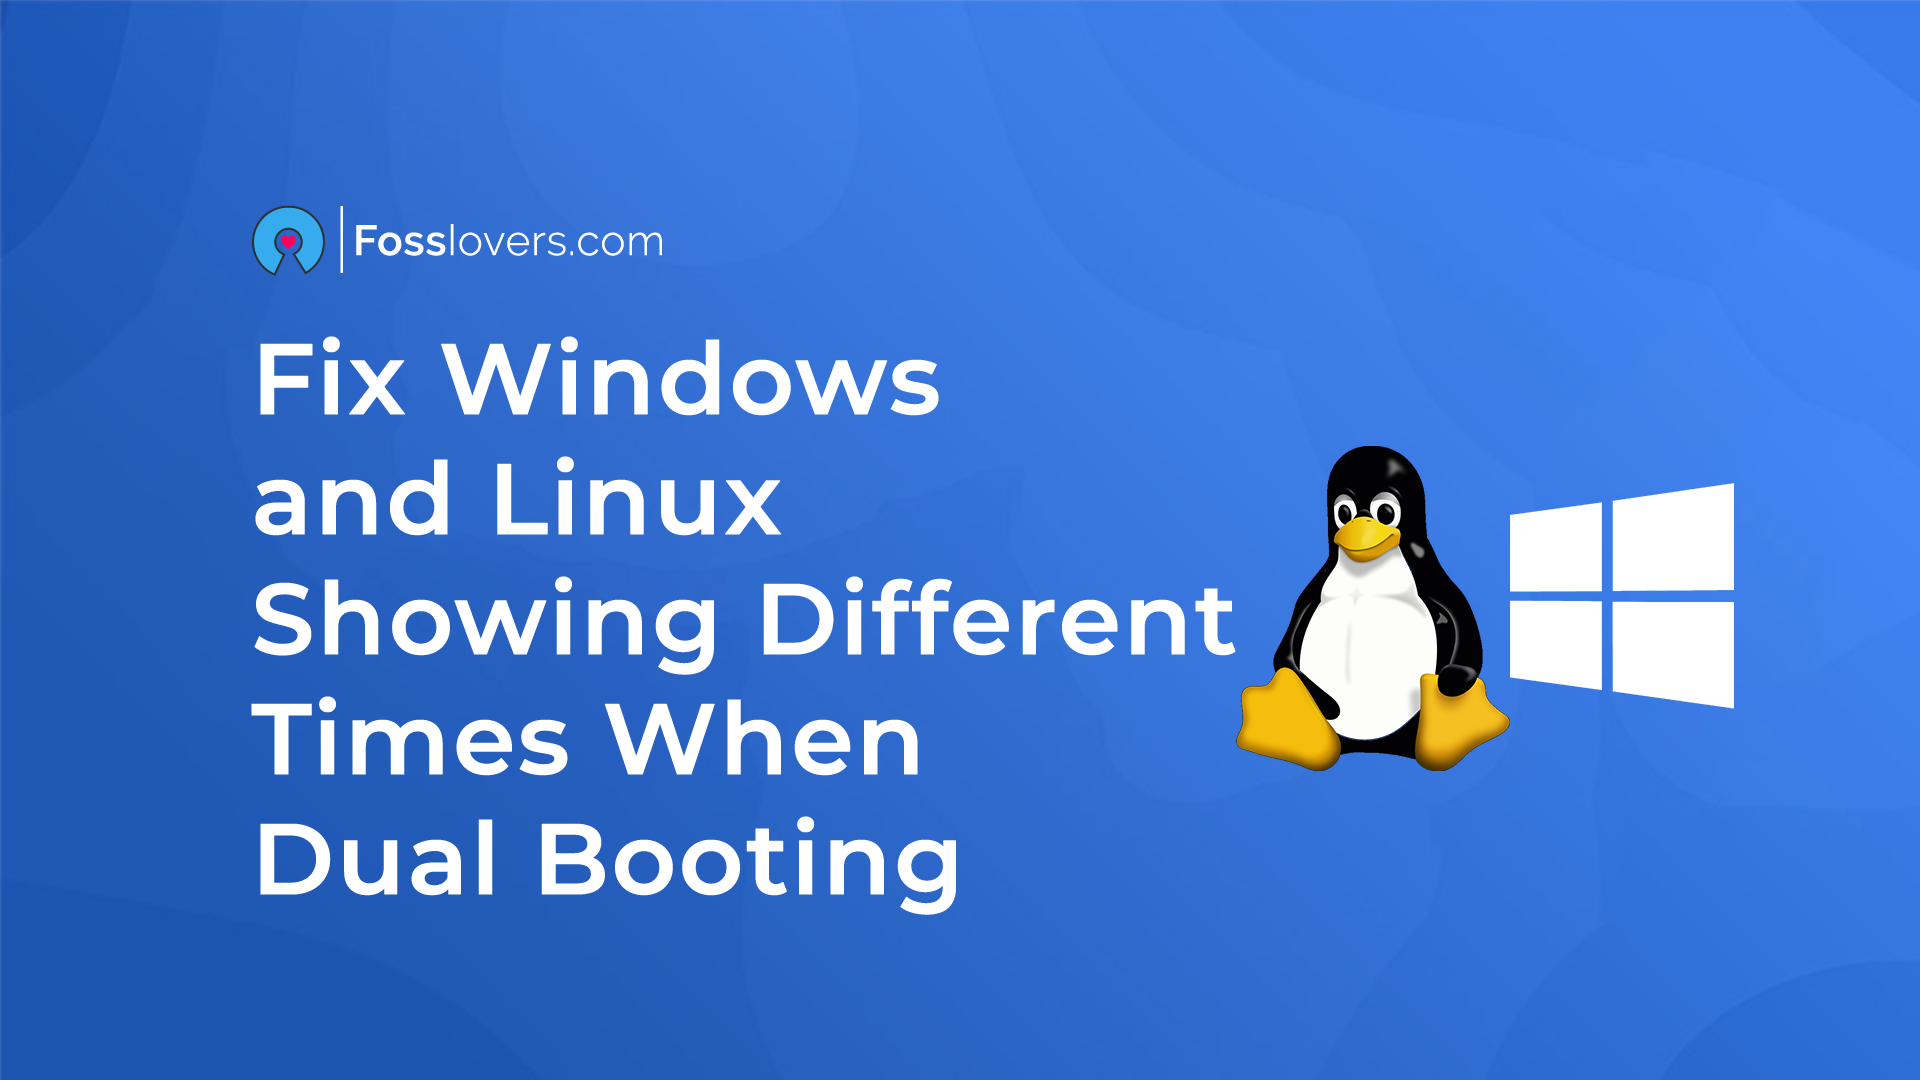 Fix Windows and Linux Showing Different Times When Dual Booting